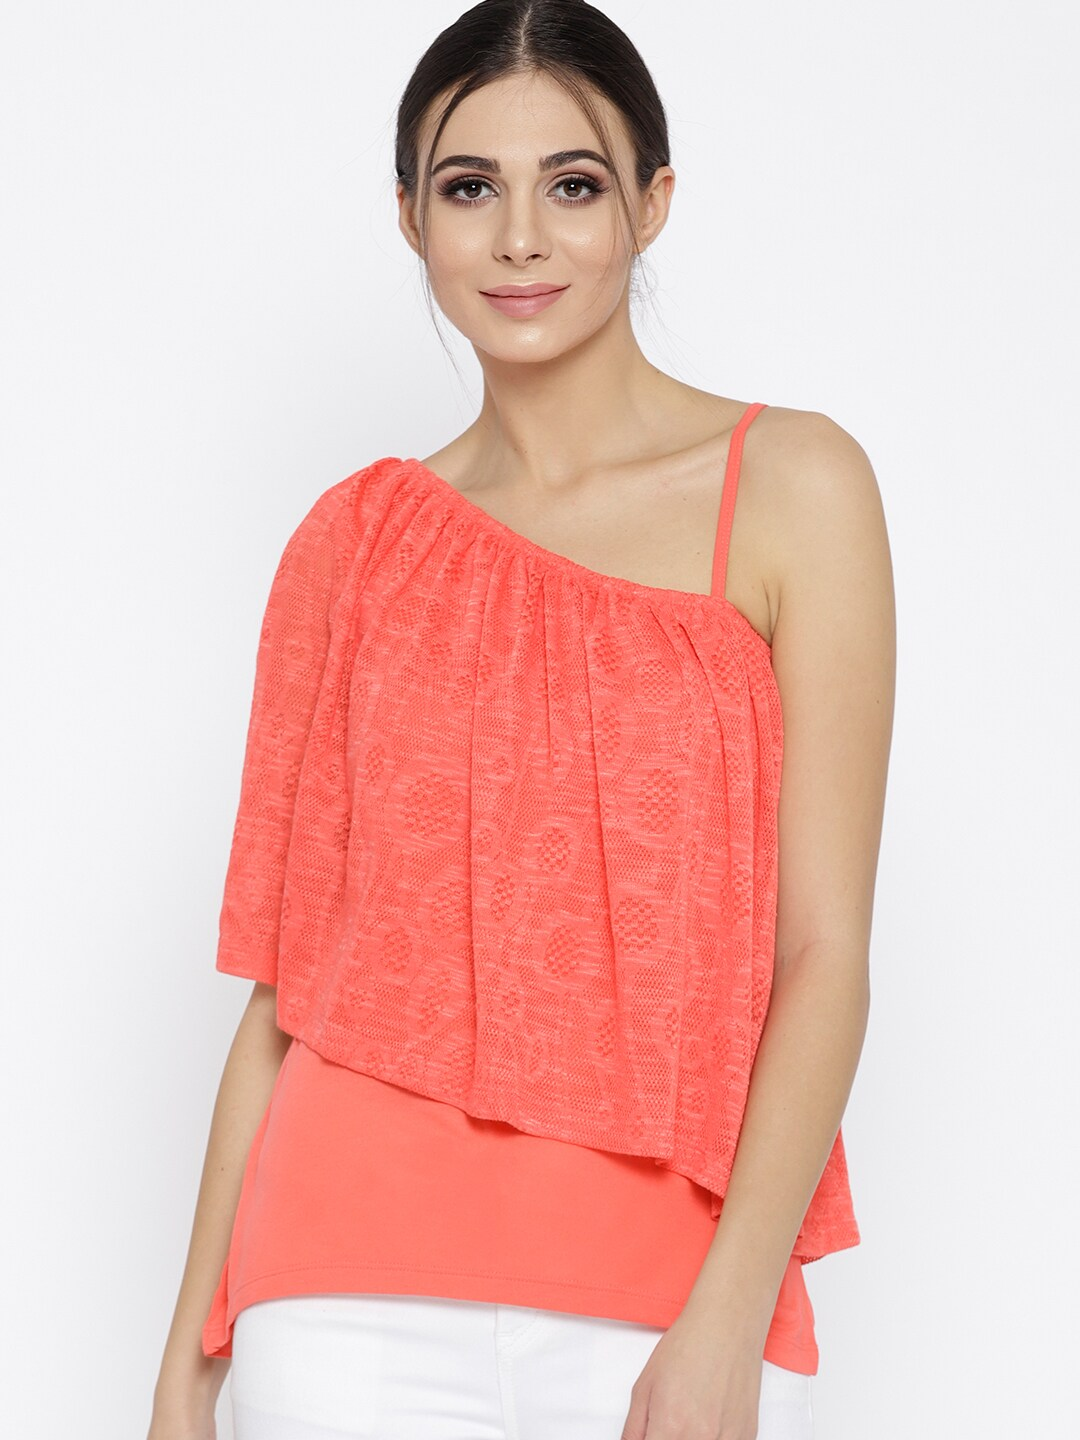 8bf01f81056 Lee Cooper Women Coral Red Lace Top